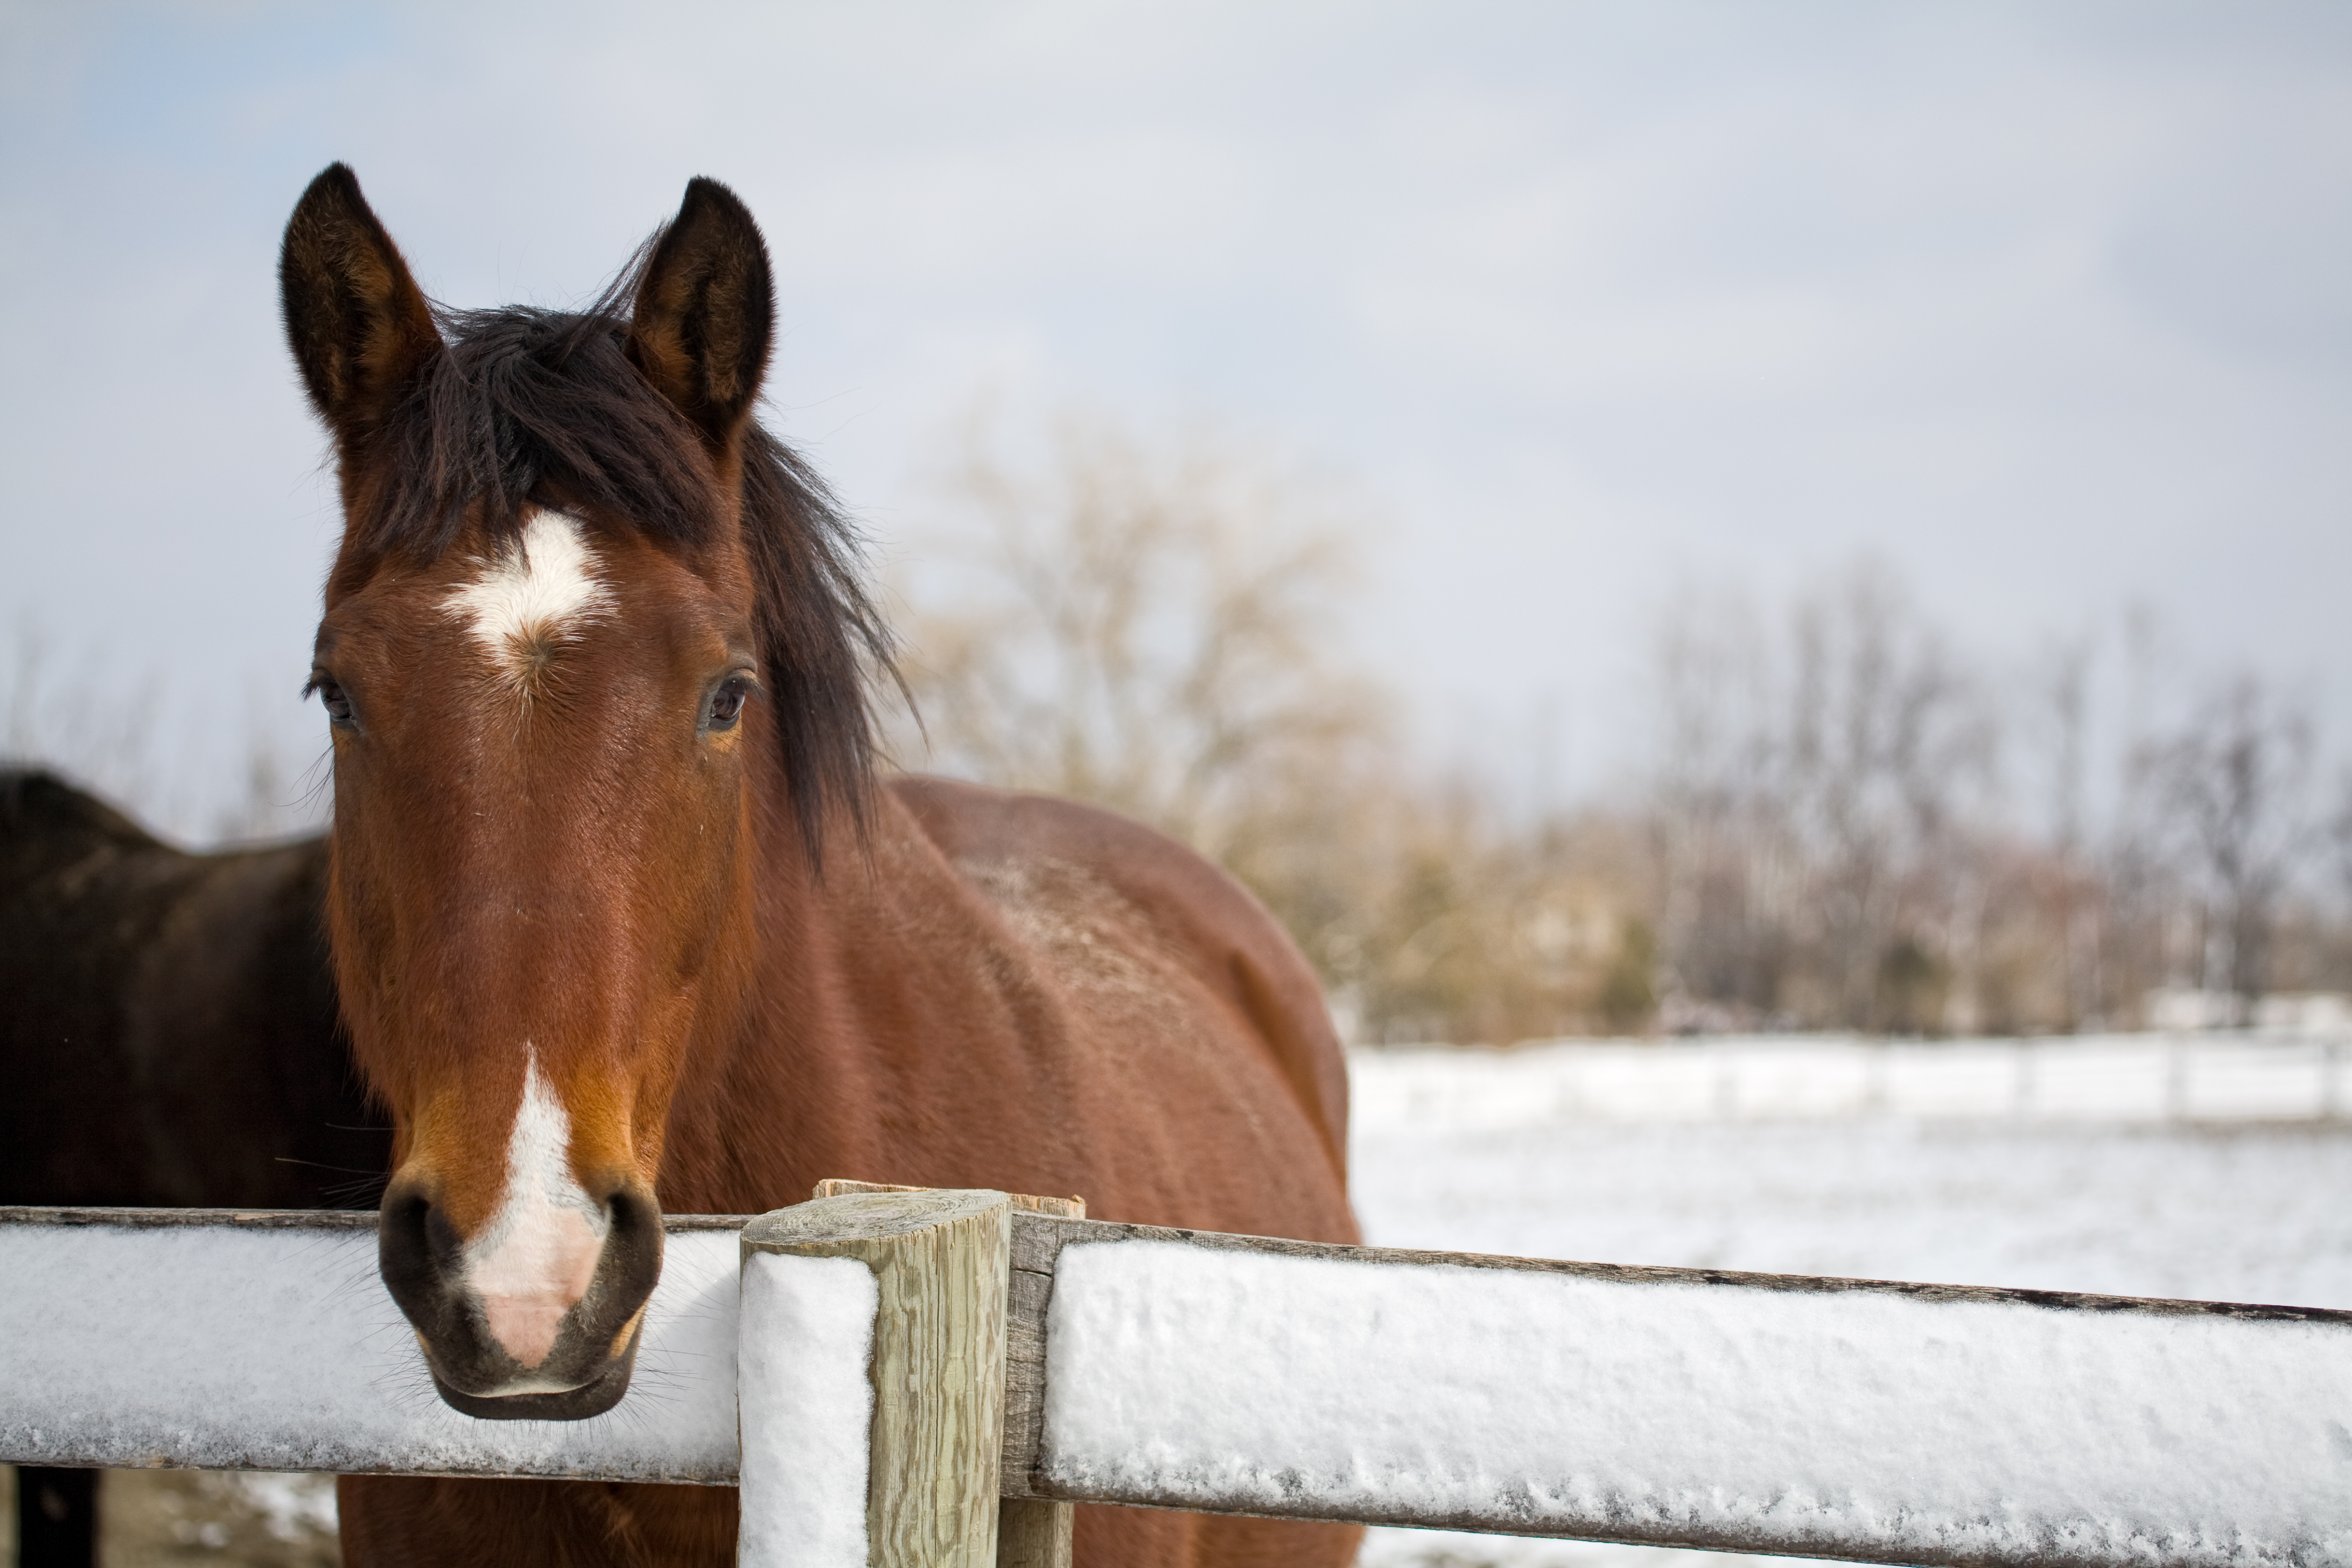 Horses need a little extra TLC during cold, wet winter weather